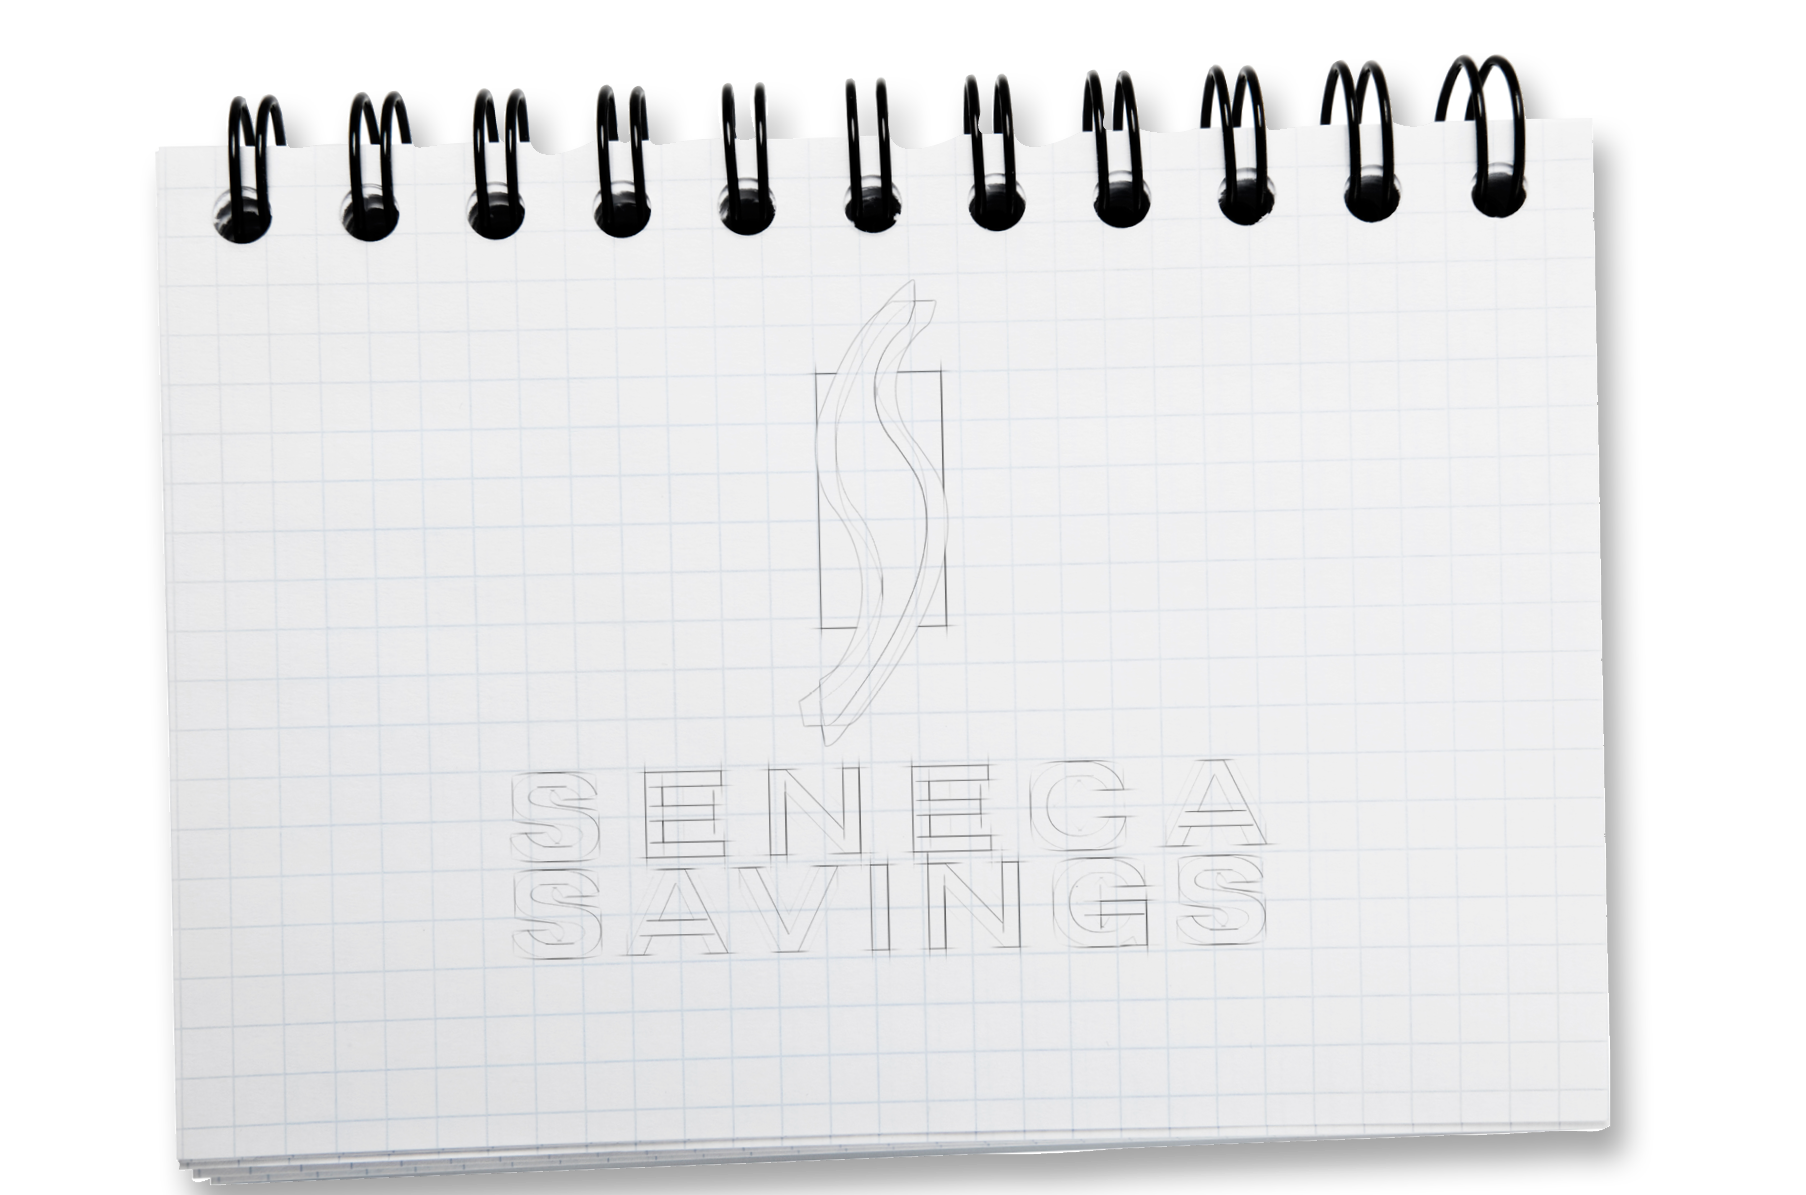 Seneca Savings Brand Identity